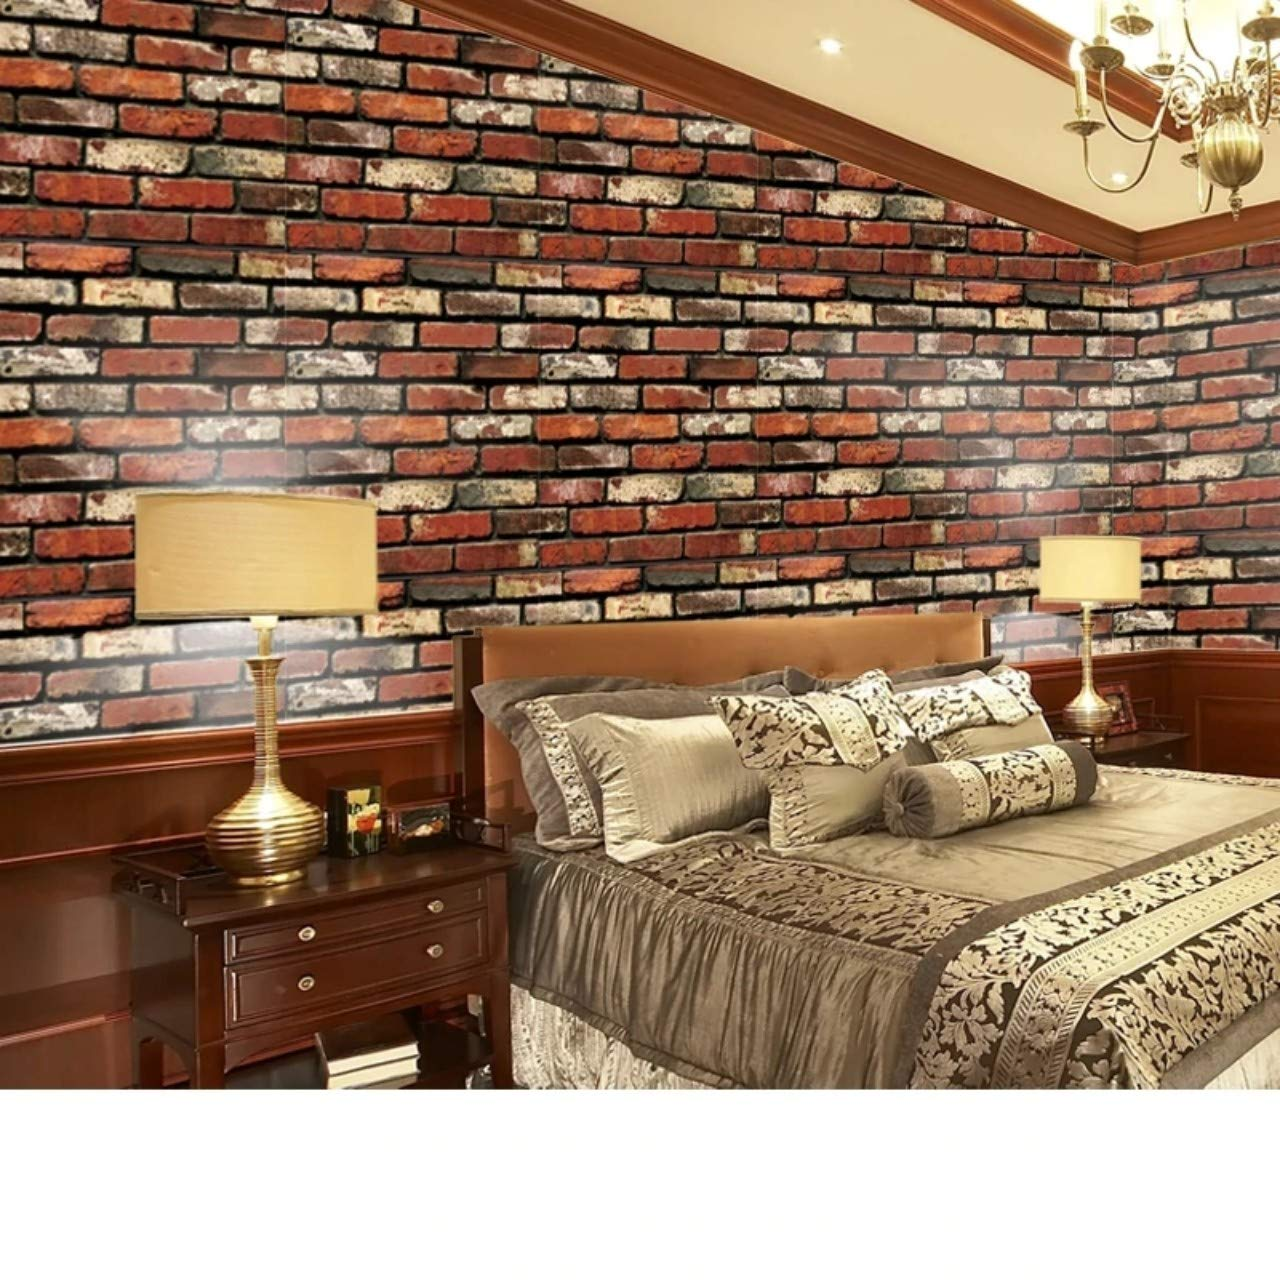 Univocean Modern Brick Wall 3d Wall Poster Wallpaper Wall Sticker Home Decor Stickers For Bedrooms Living Room Hall Kids Room Play Room